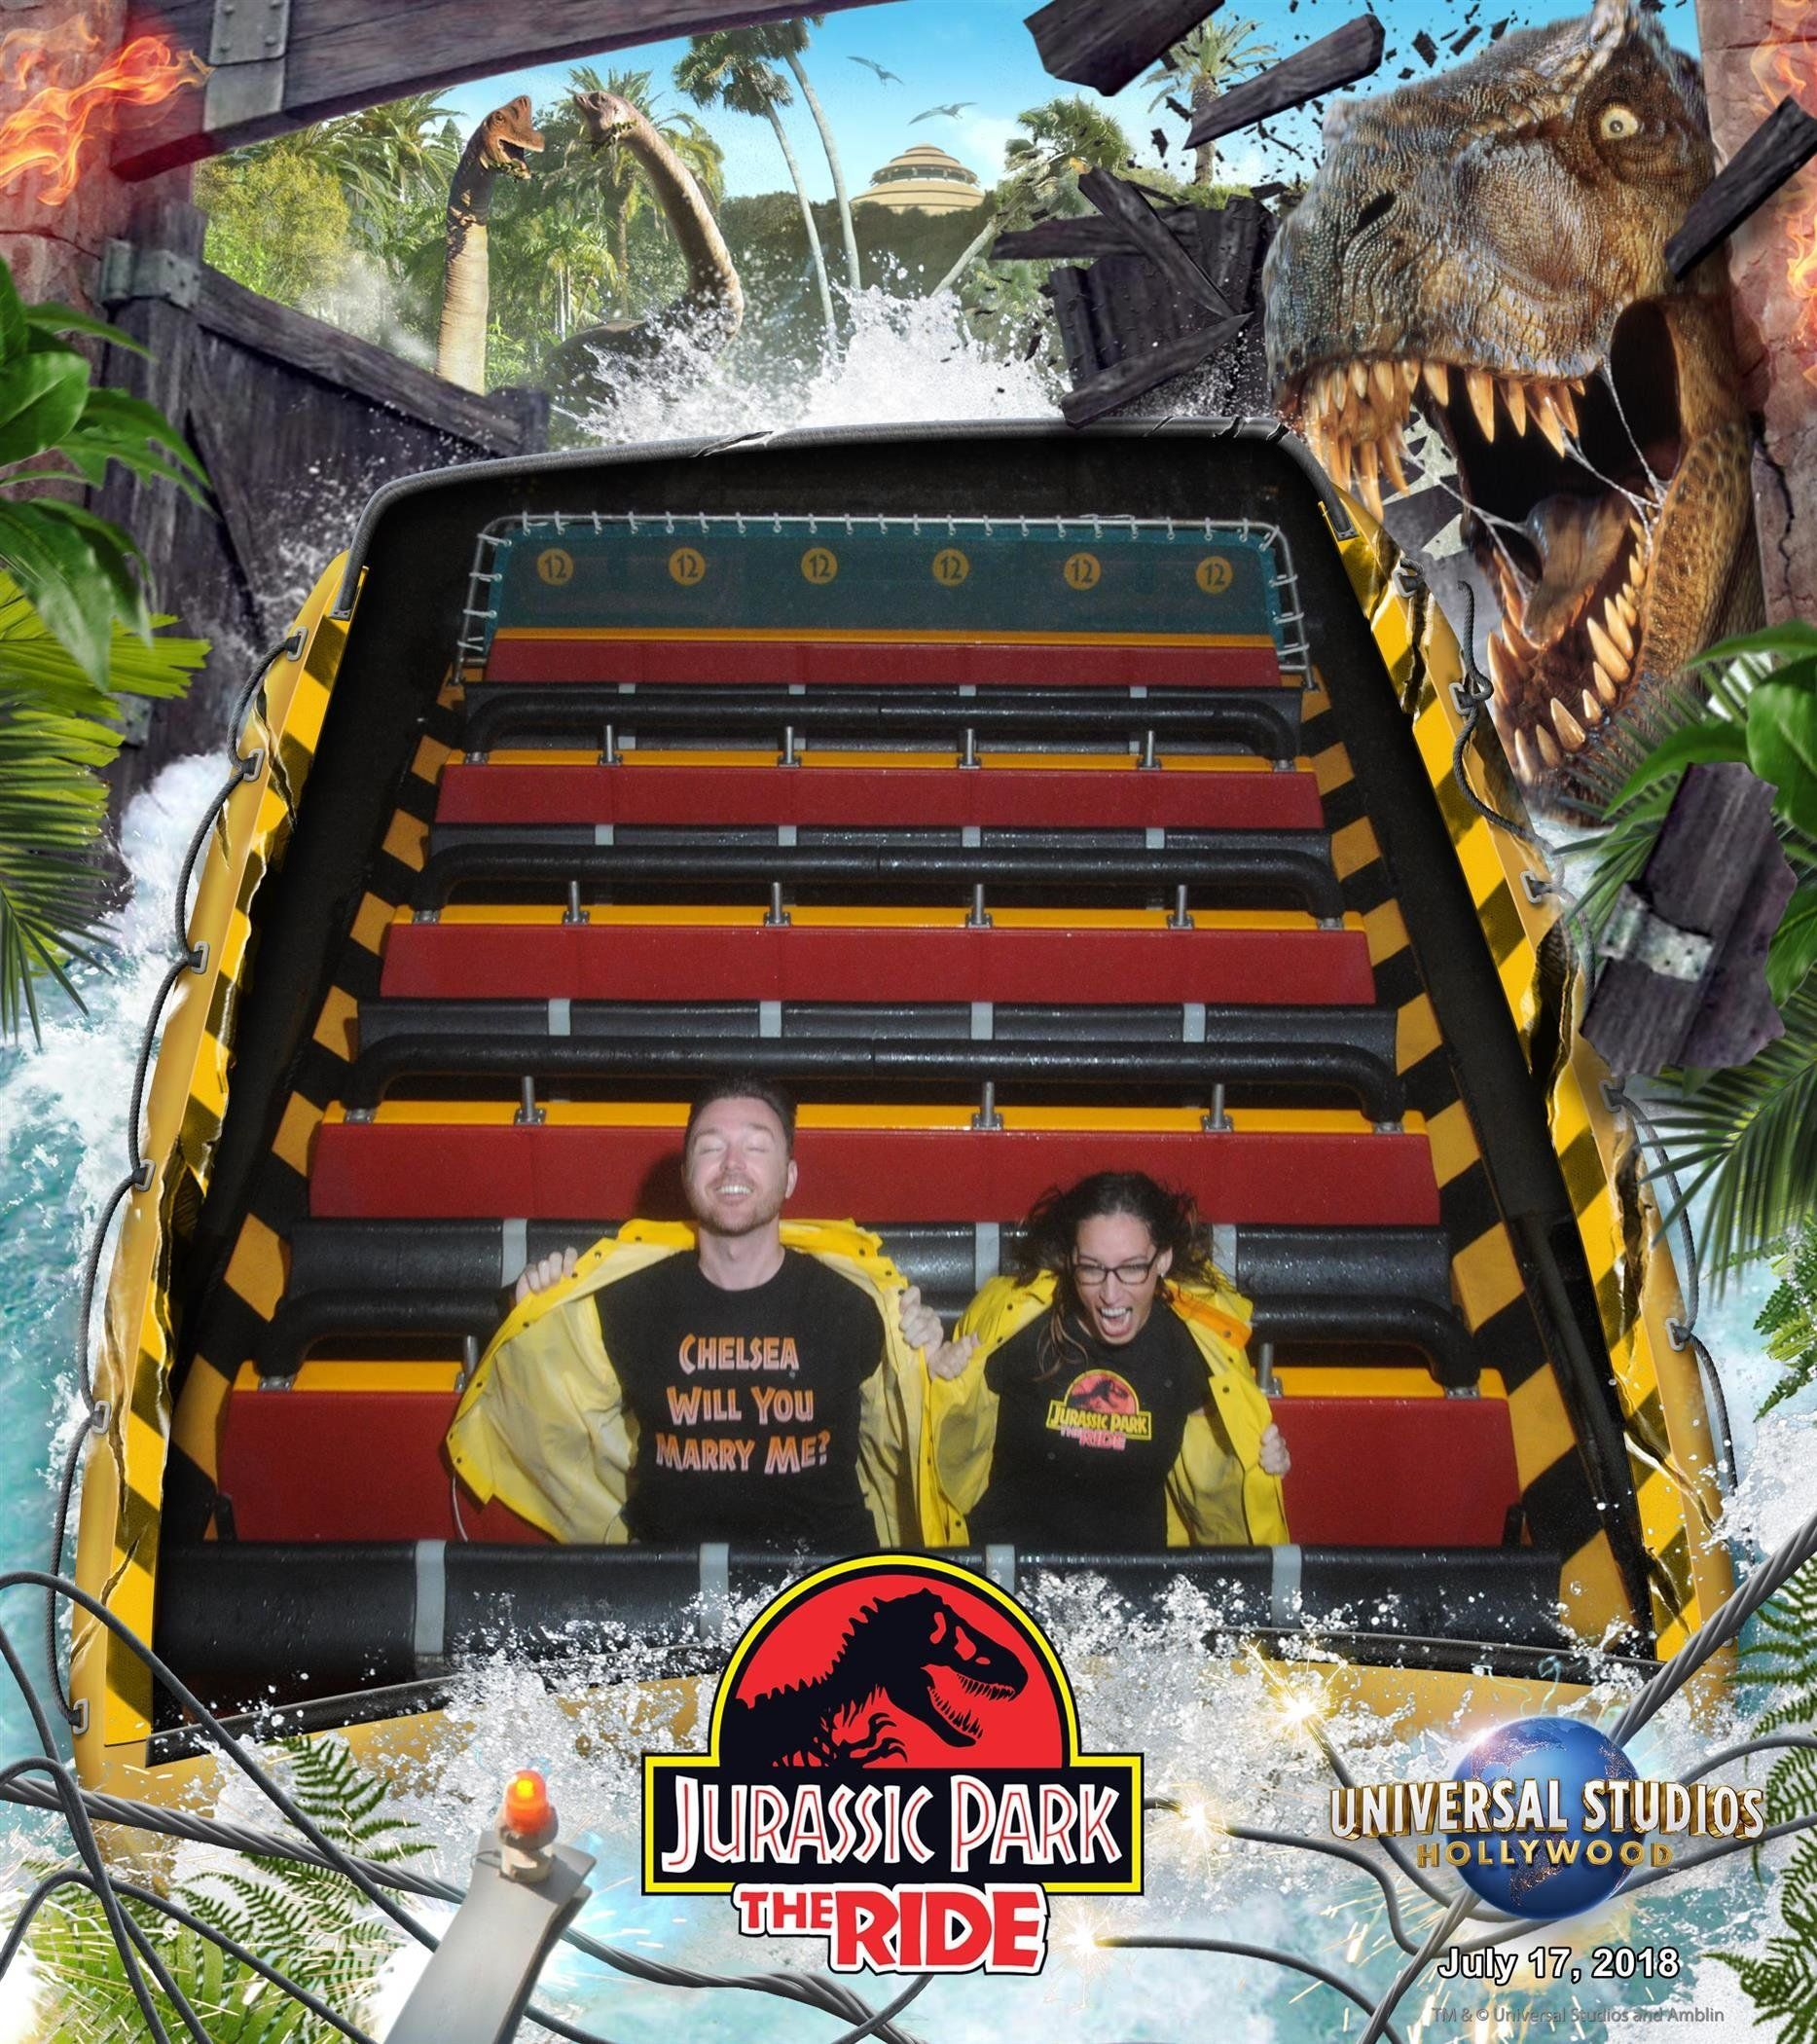 Couple Gets Engaged After Riding 'Jurassic Park' Ride A Record 62